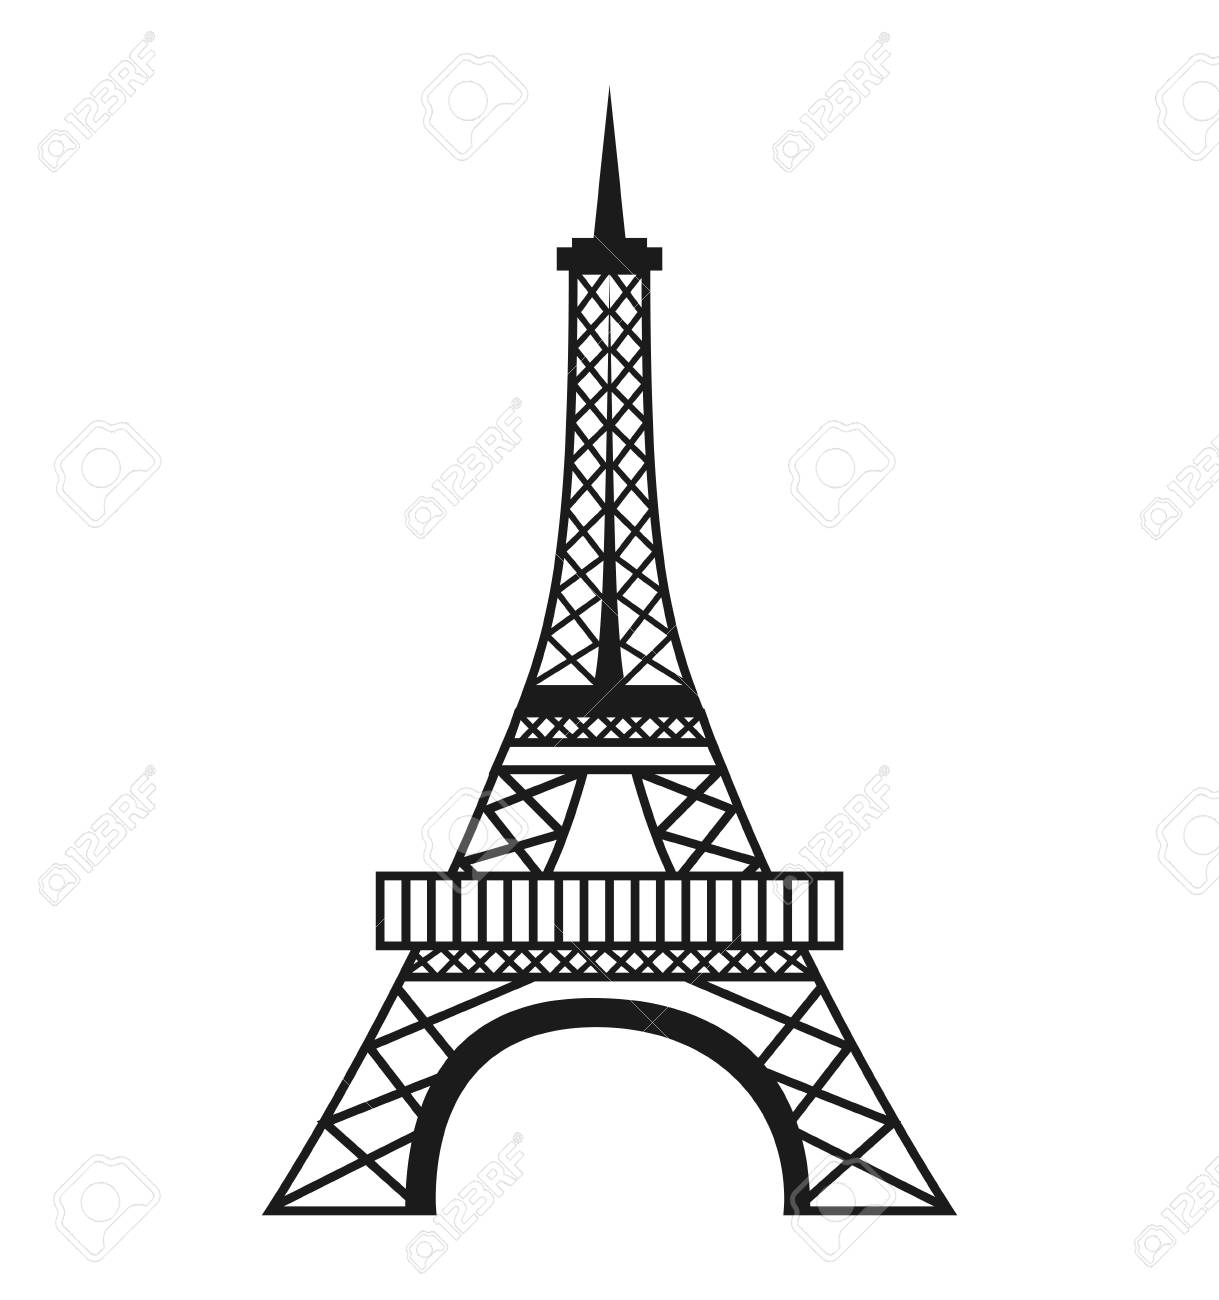 tower eiffel structure icon vector illustration design royalty free cliparts vectors and stock illustration image 60535461 tower eiffel structure icon vector illustration design